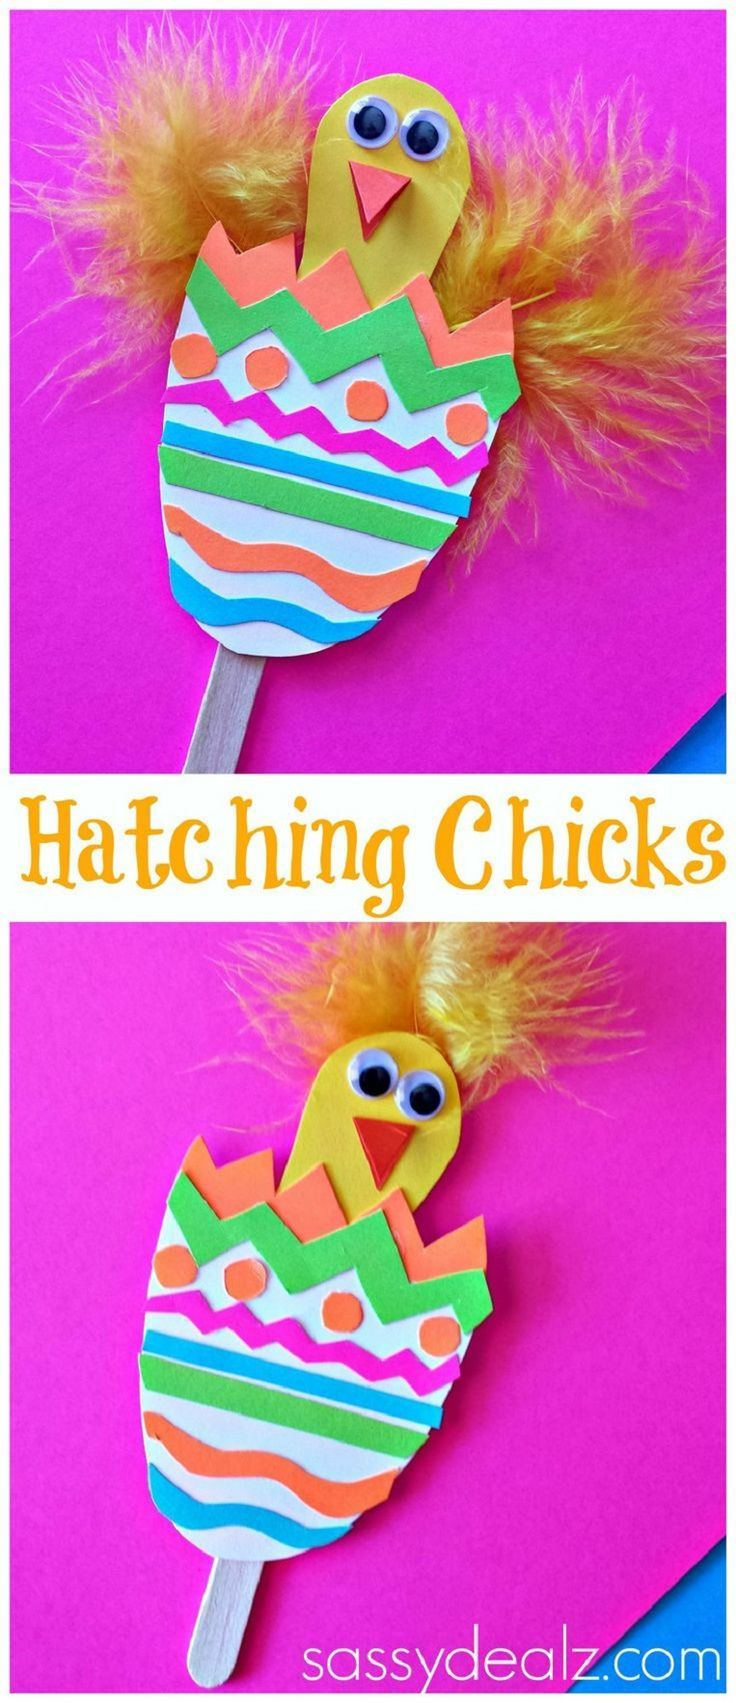 Hatching Chick Craft Using Popsicle Sticks - 15 Eggstra-Special Easter Crafts for Kids | GleamItUp